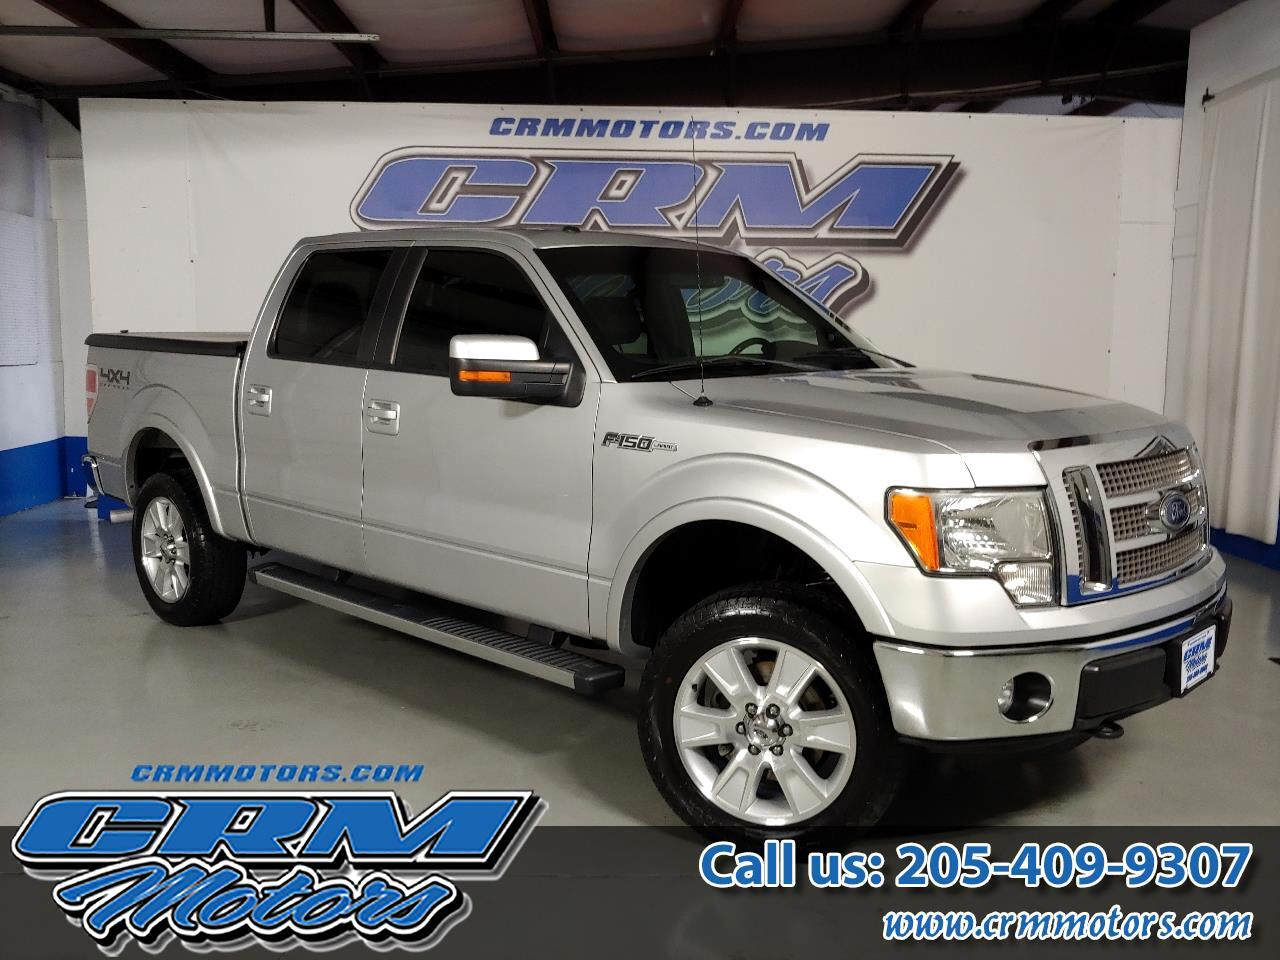 2012 Ford F-150 4WD SUPERCREW LARIAT W/ BED COVER!